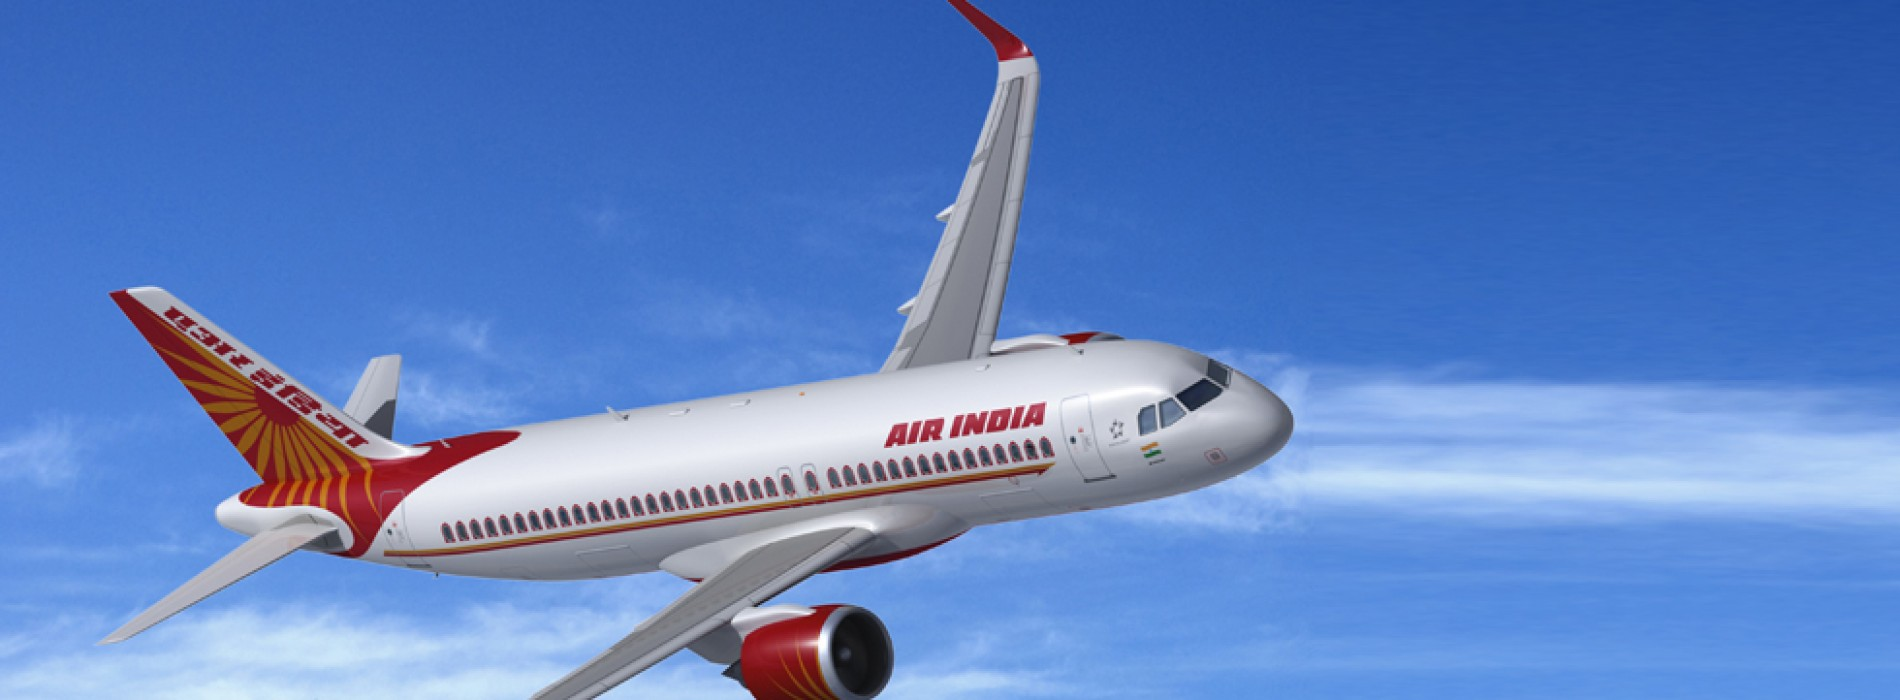 Air India increases fuel surcharge for overseas flights